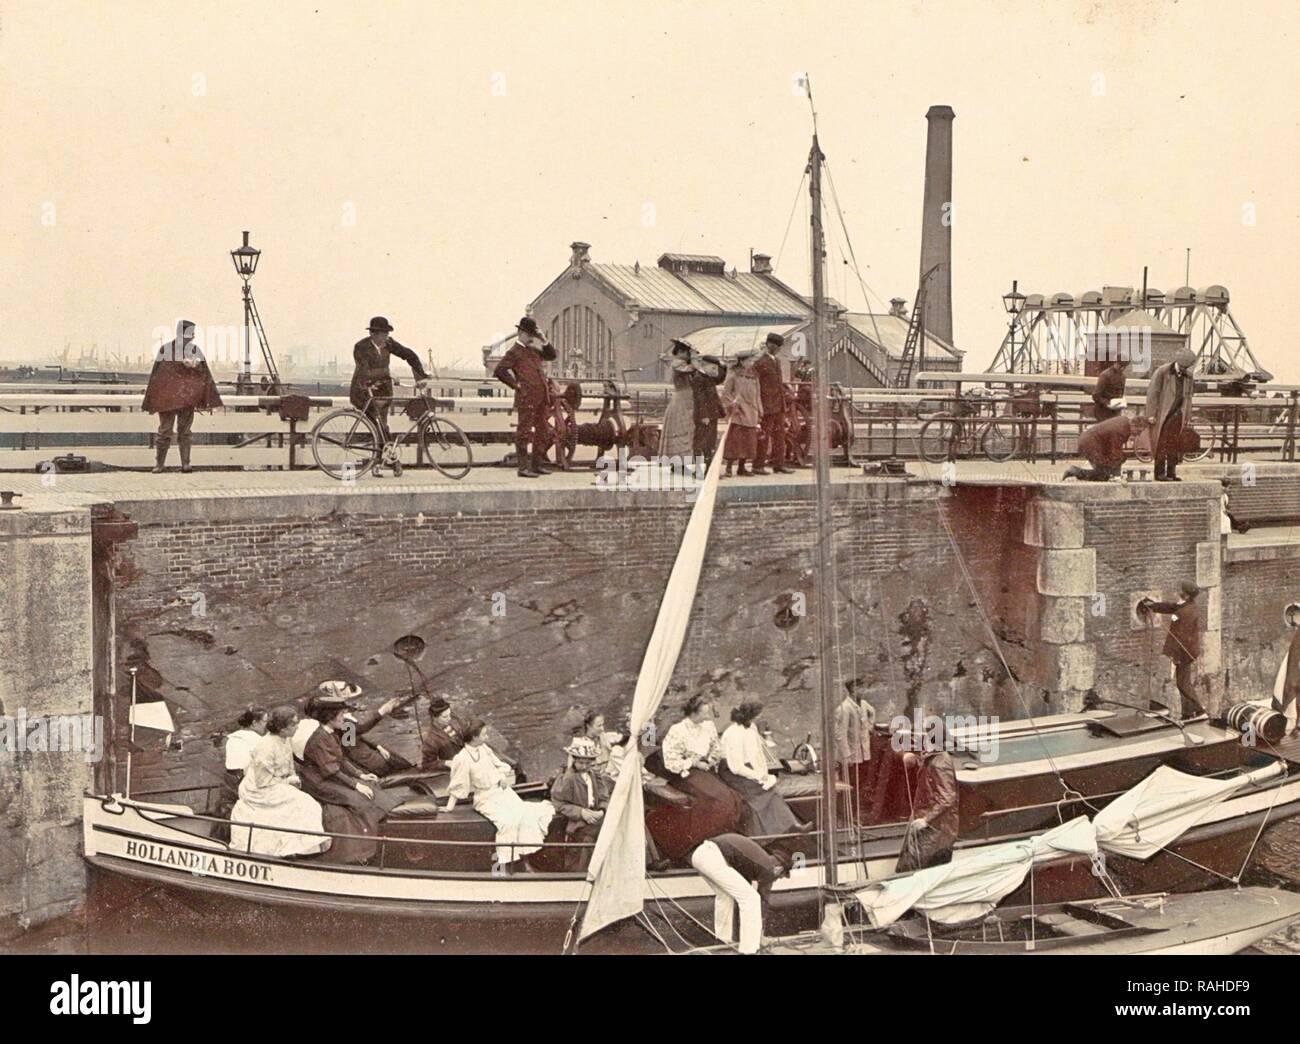 Onlookers view the locking of the Hollandia boat Oranjesluizen Amsterdam, The Netherlands, Anonymous, c. 1900 - c reimagined Stock Photo